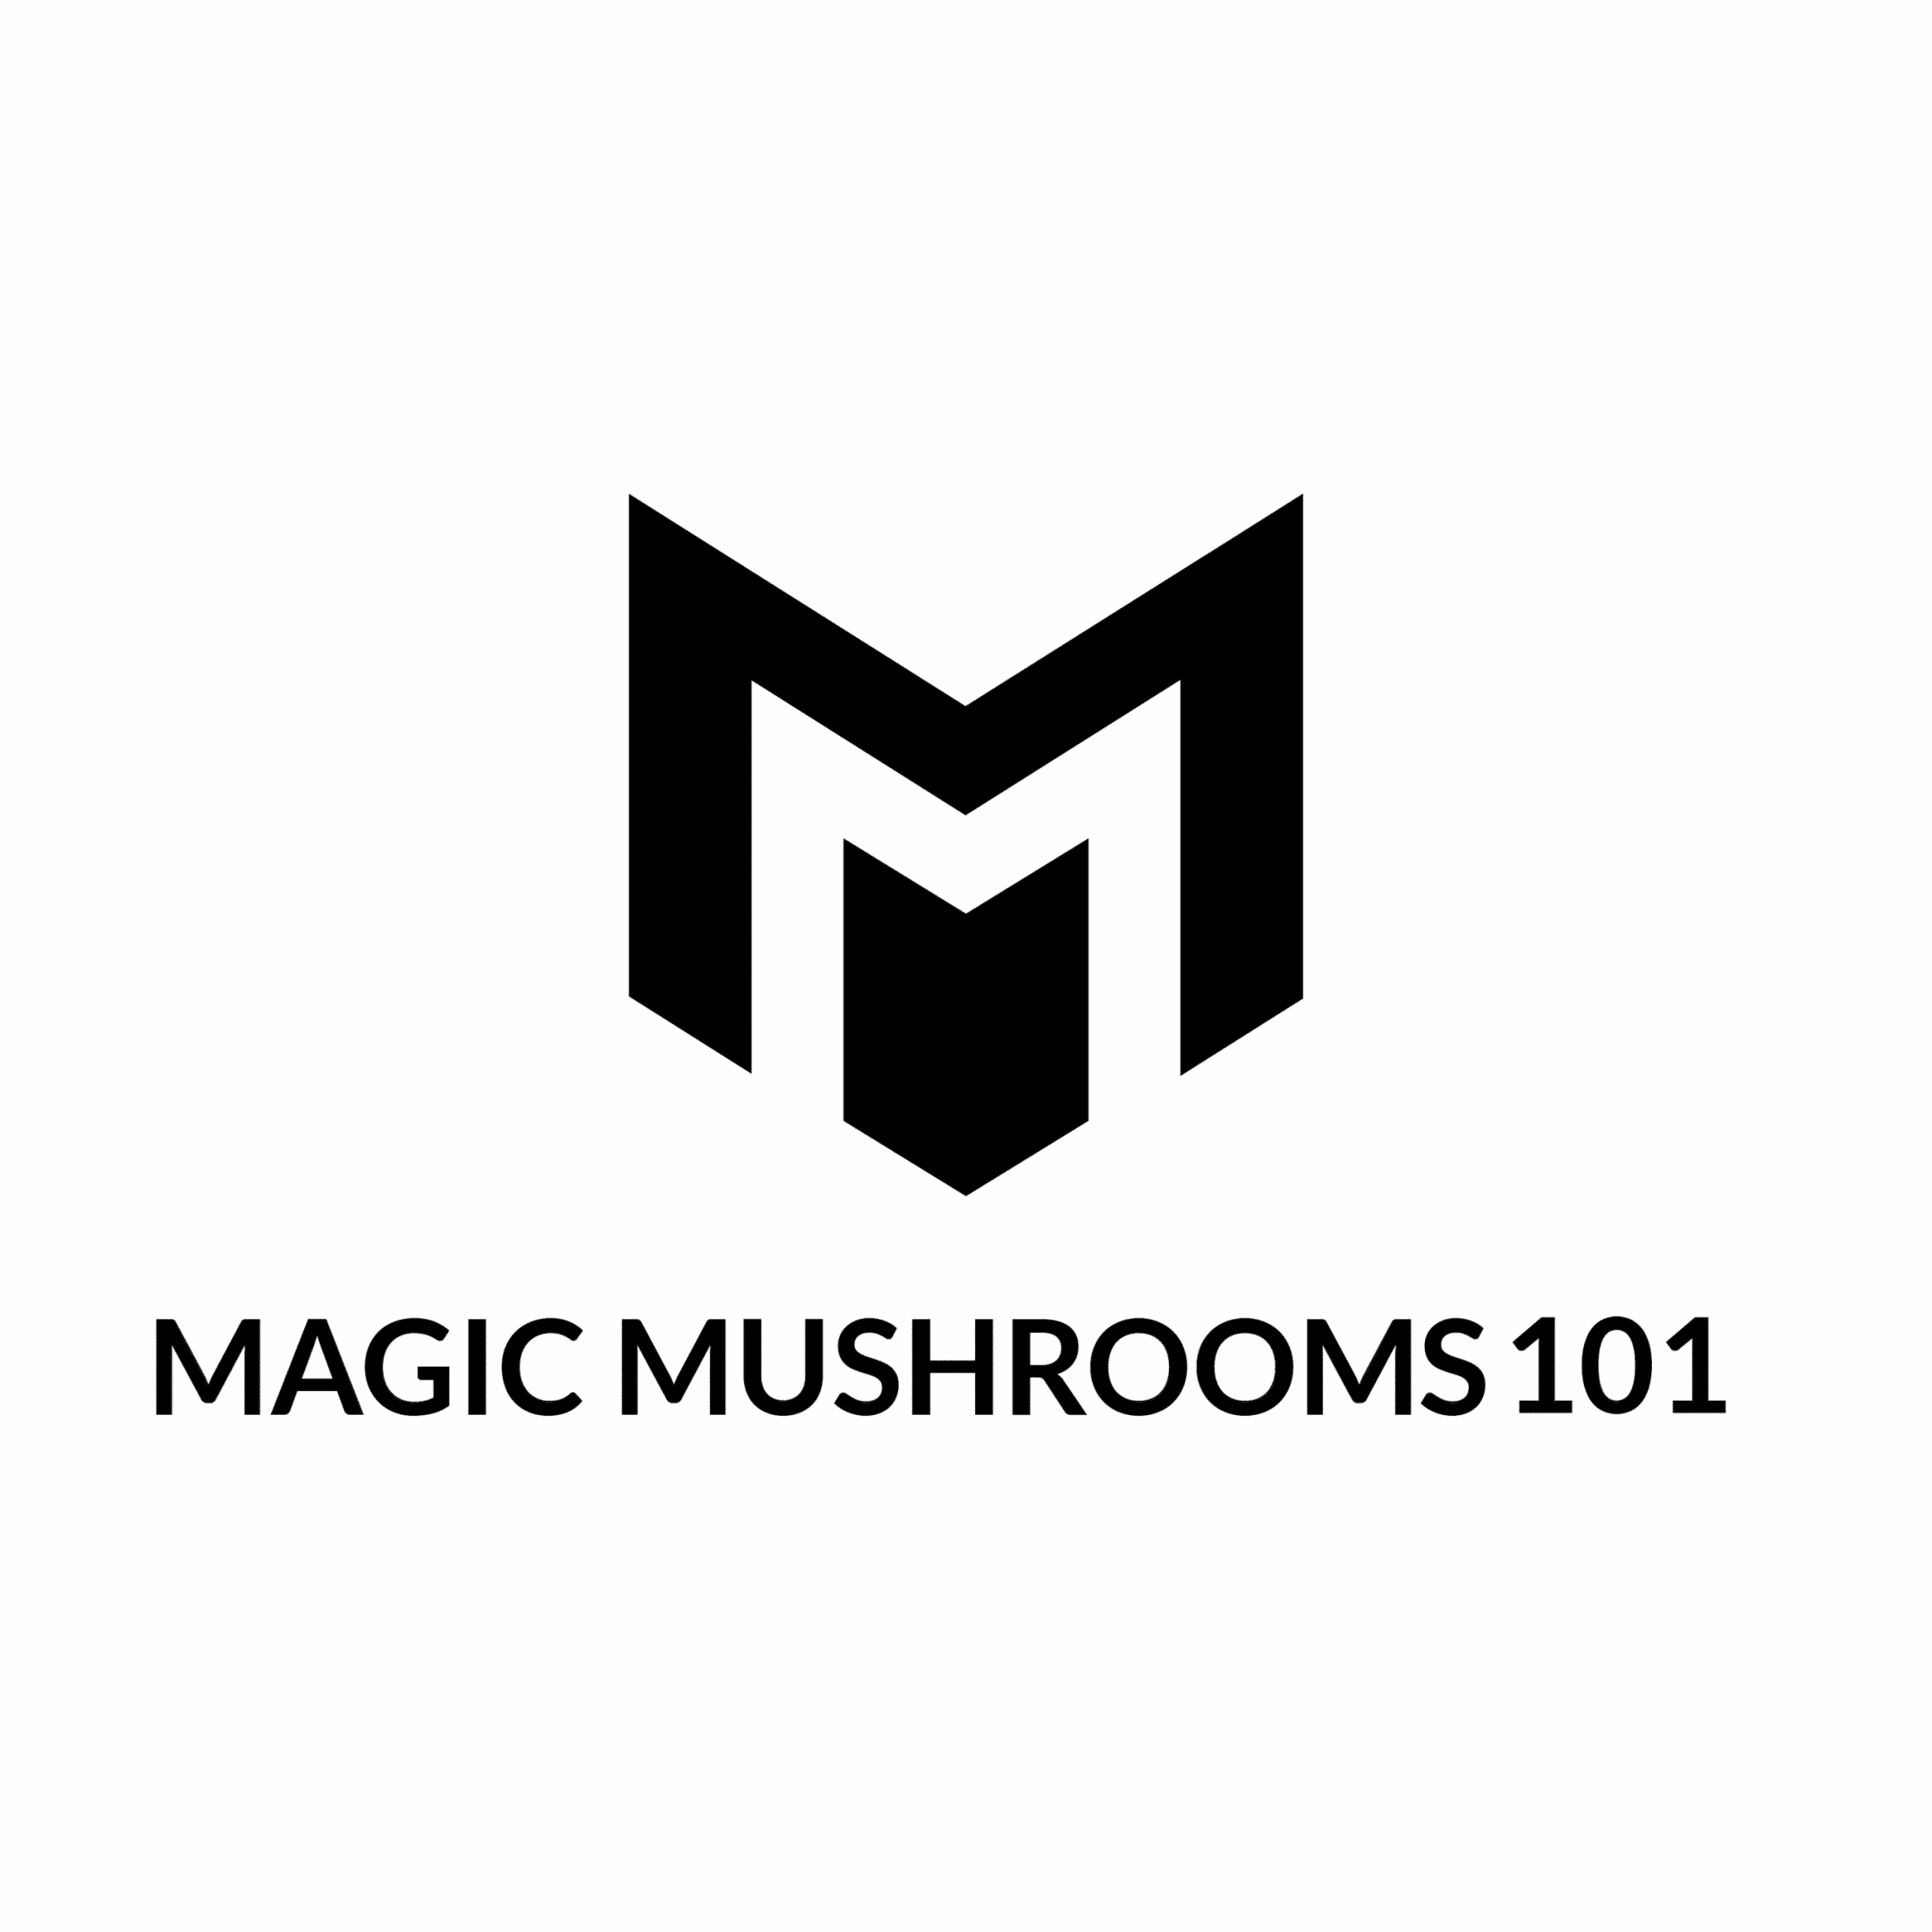 Magic Mushrooms 101